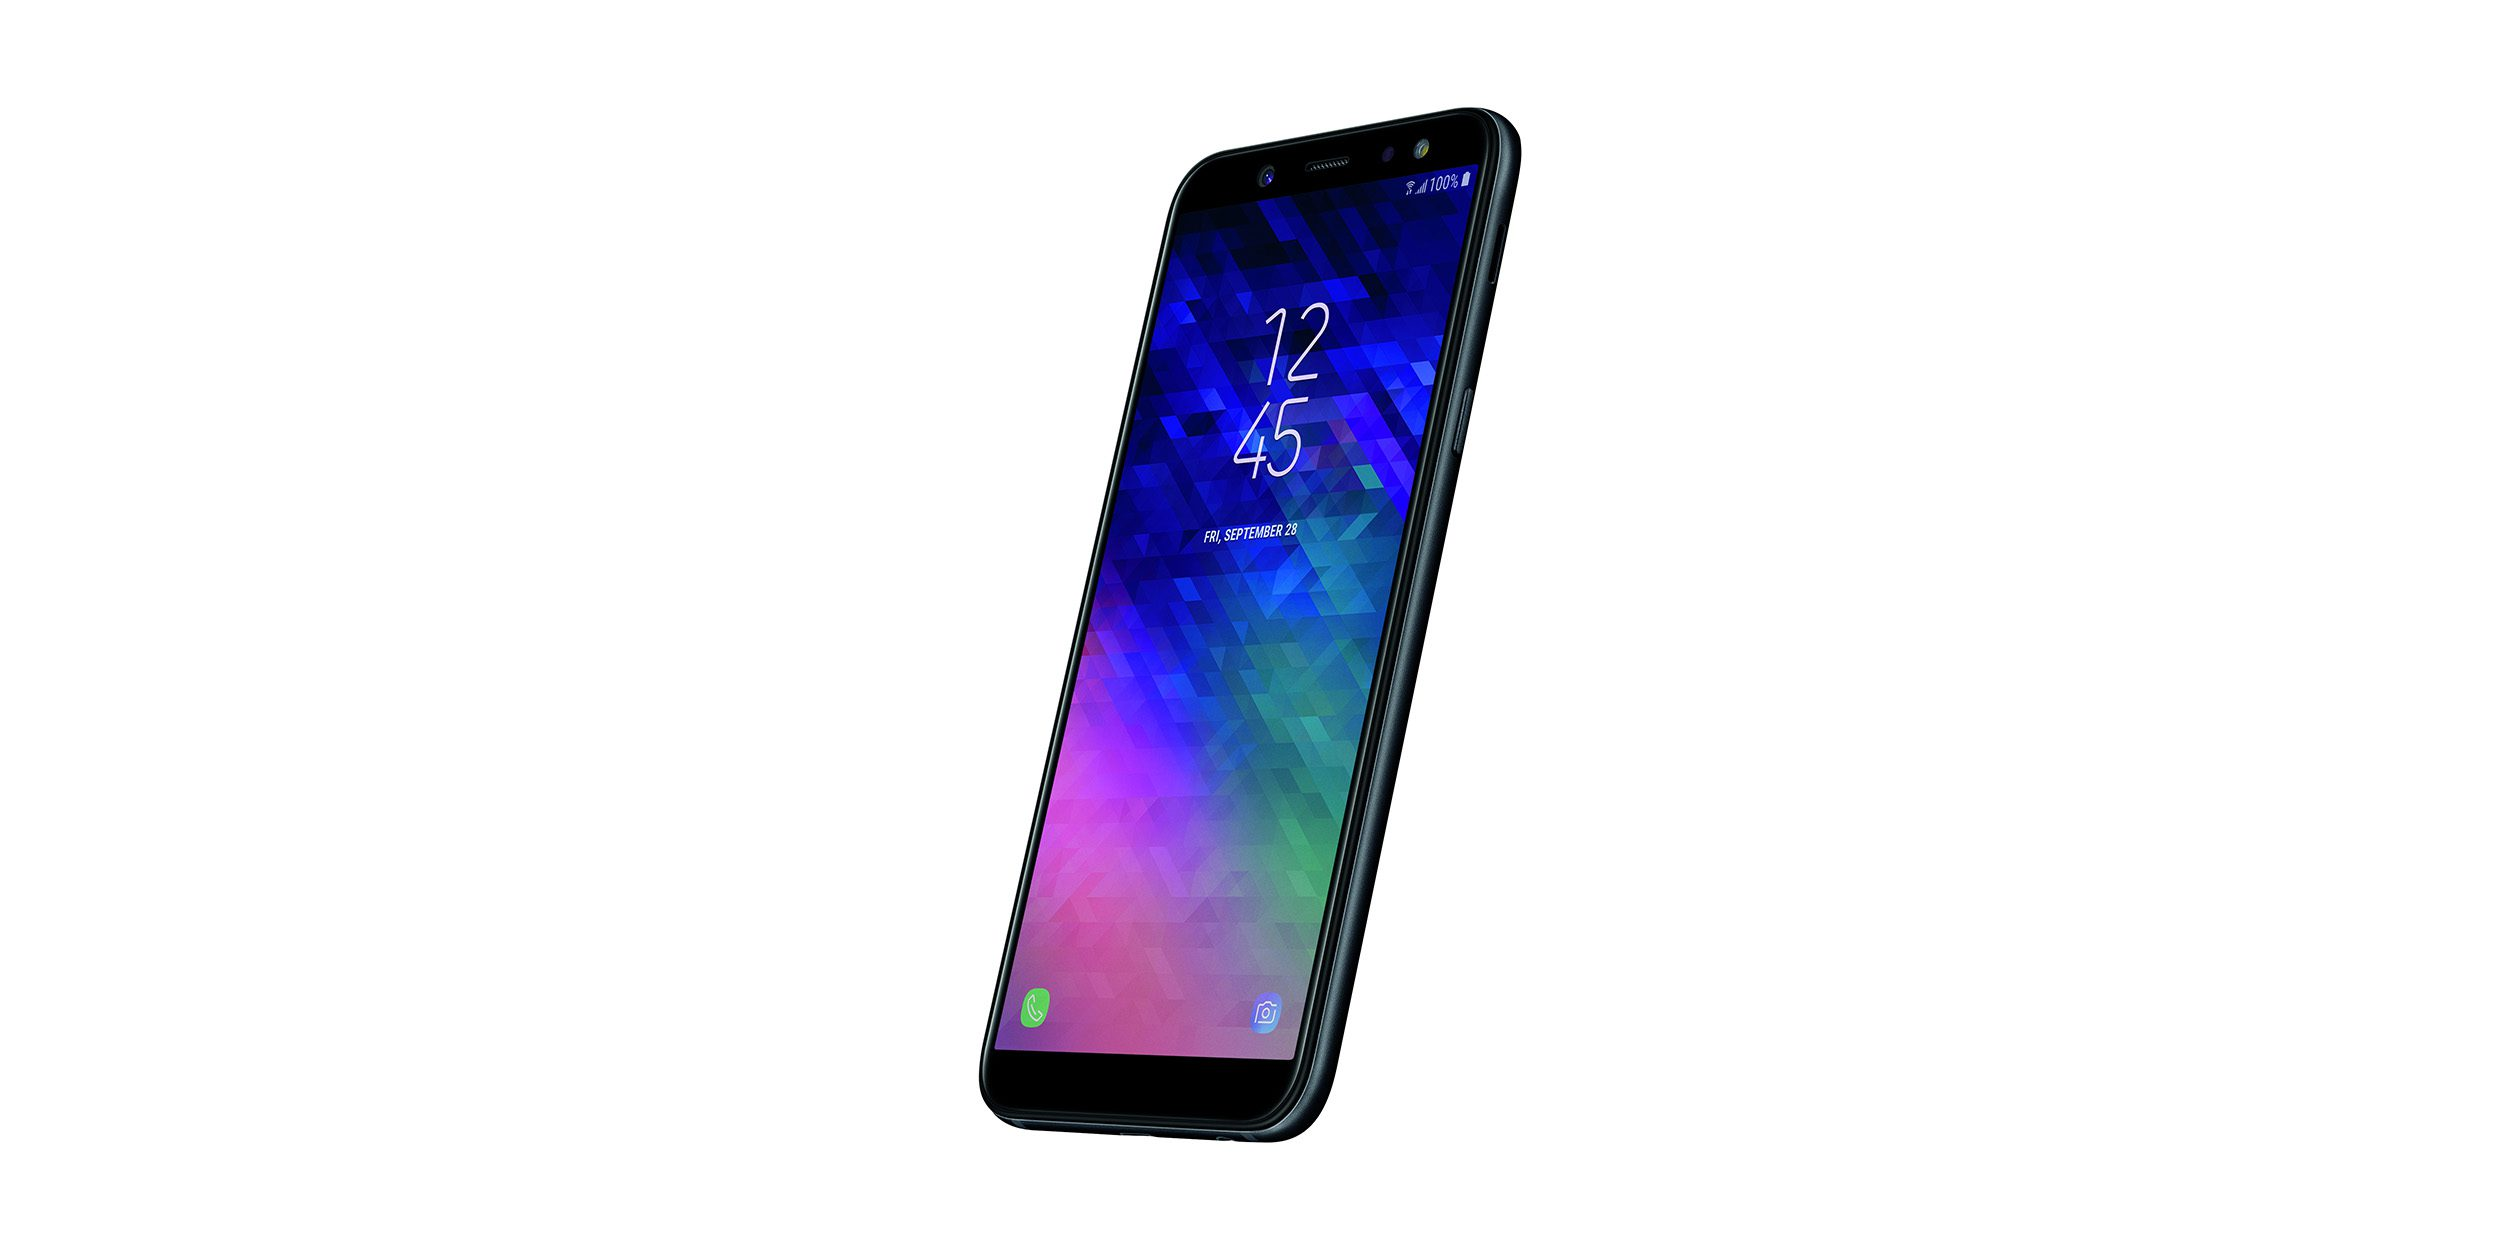 Lancement du Samsung Galaxy A6 avec 'Infinity Display' et Galaxy Tab A 10.5 ″ le 14 septembre